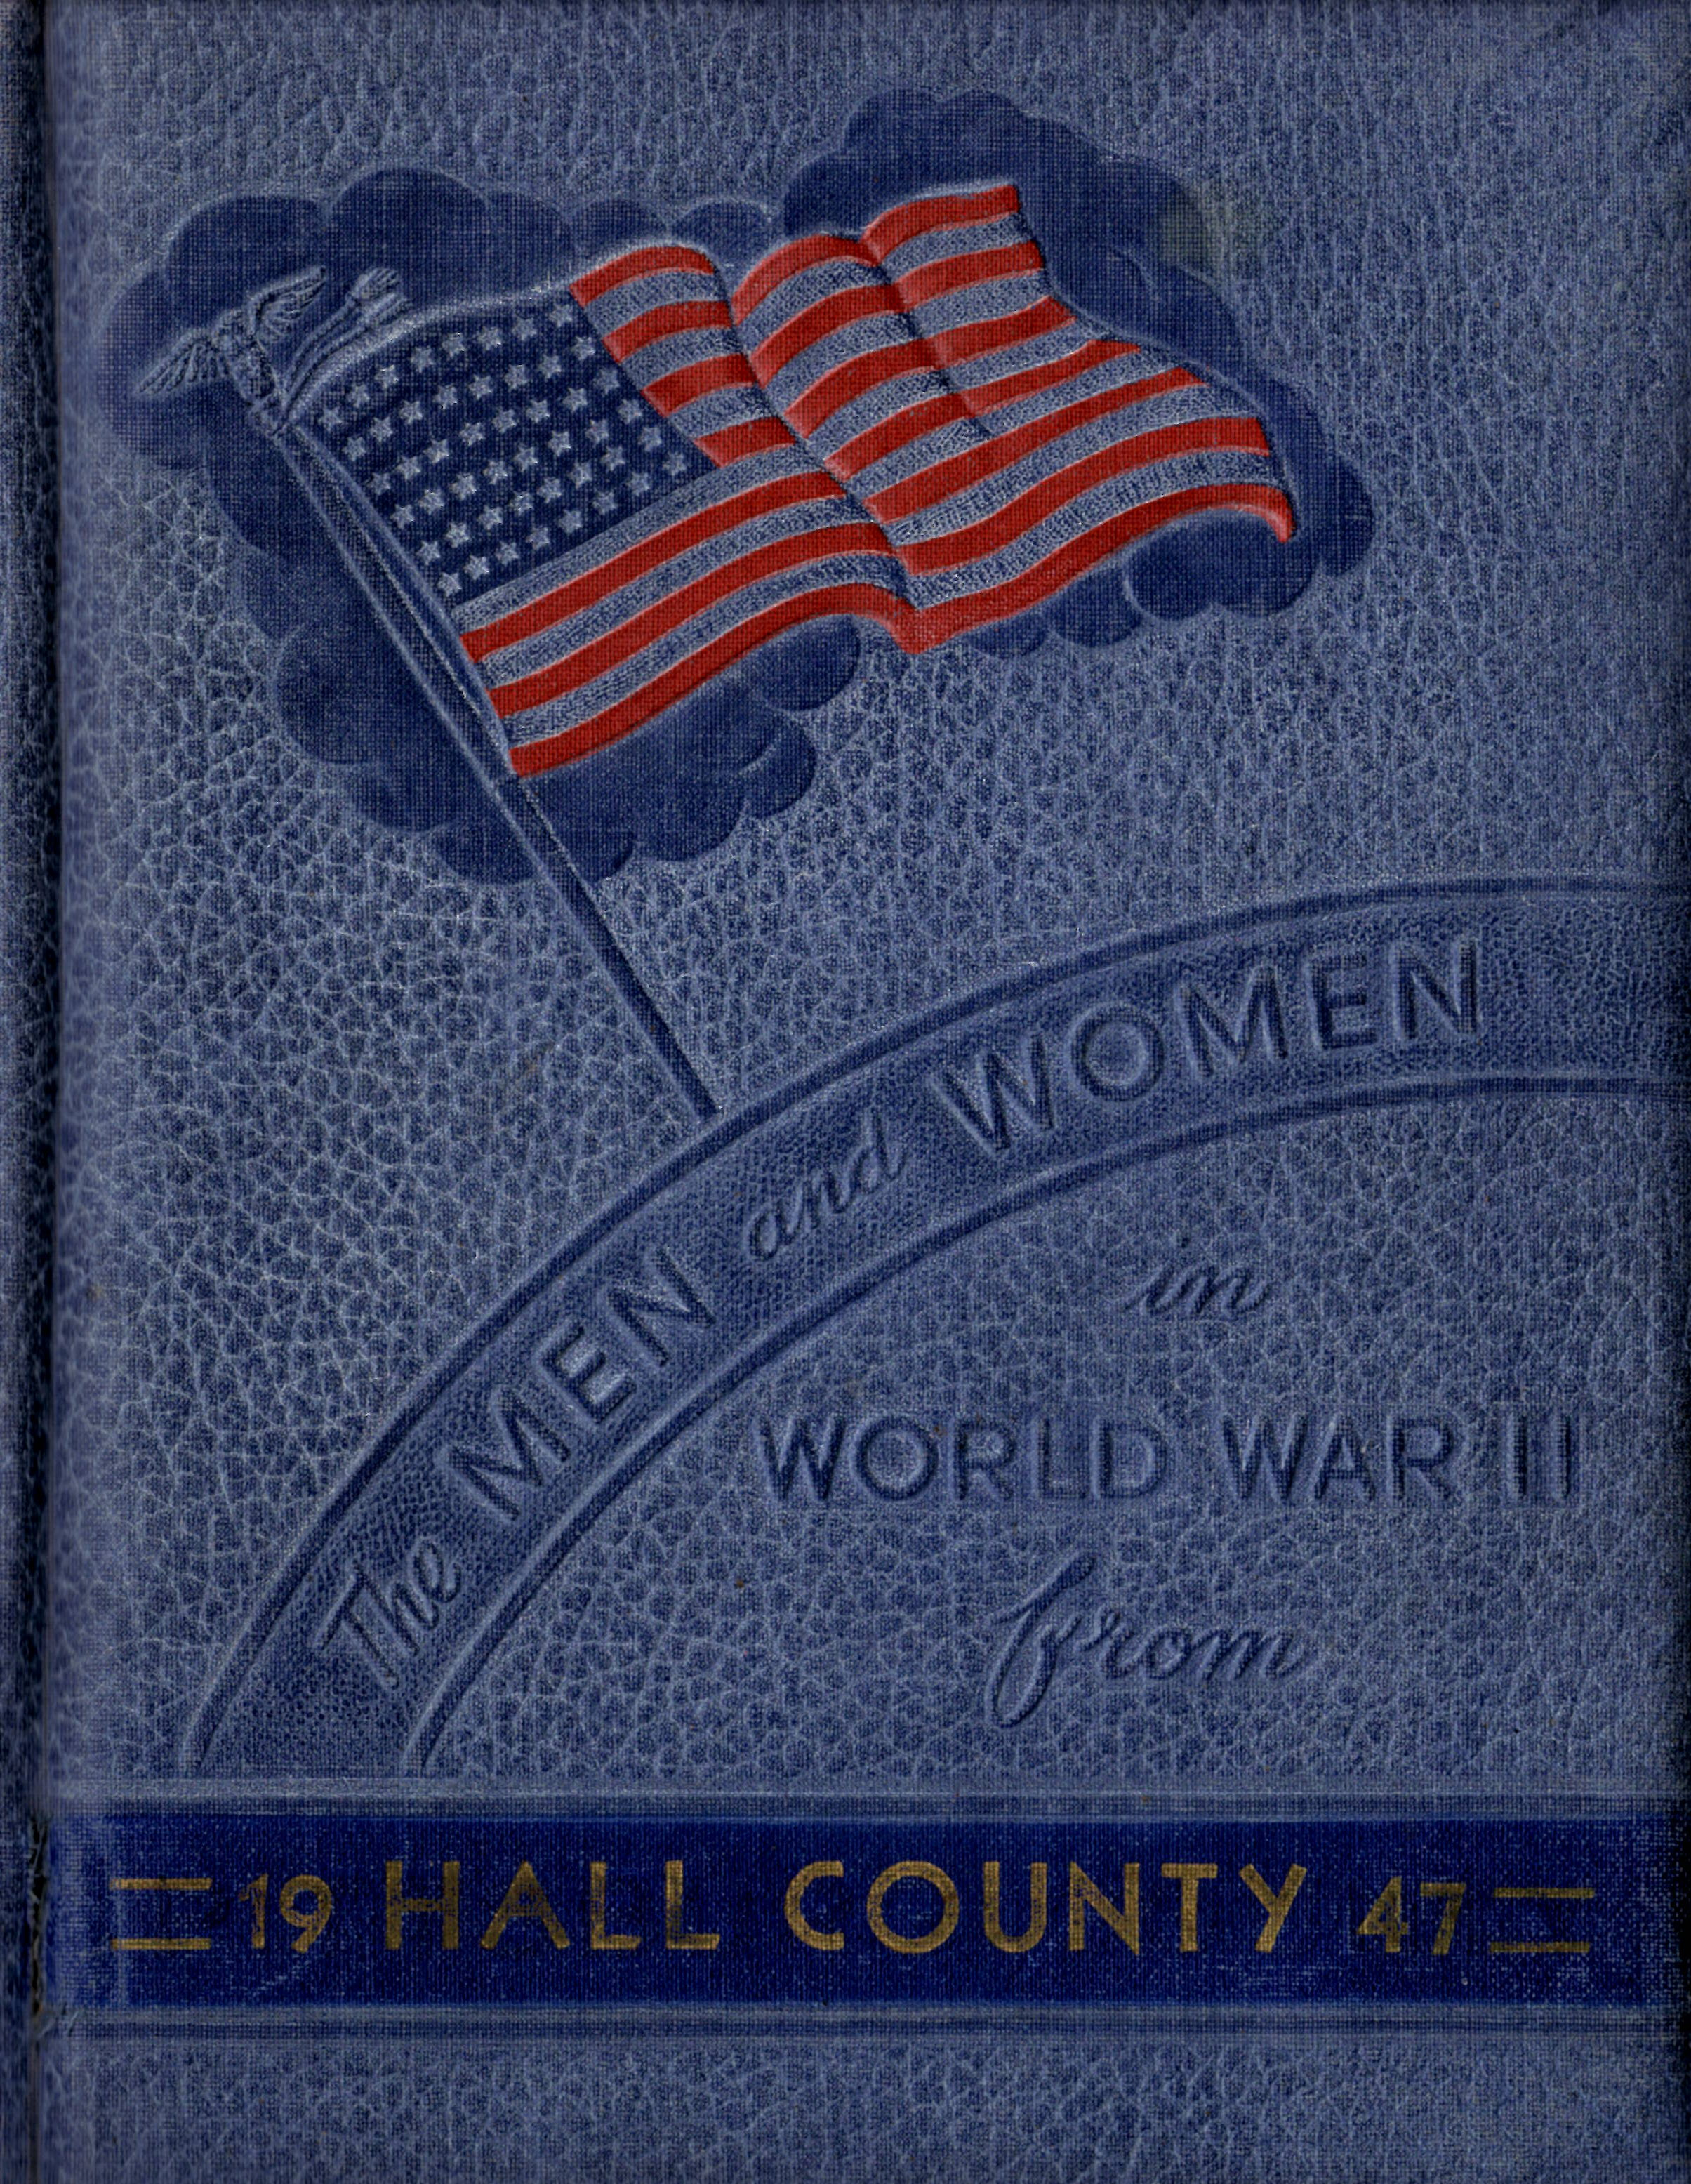 Men and women in the Armed Forces from Hall County Texas World War II 2 WW2 WWII